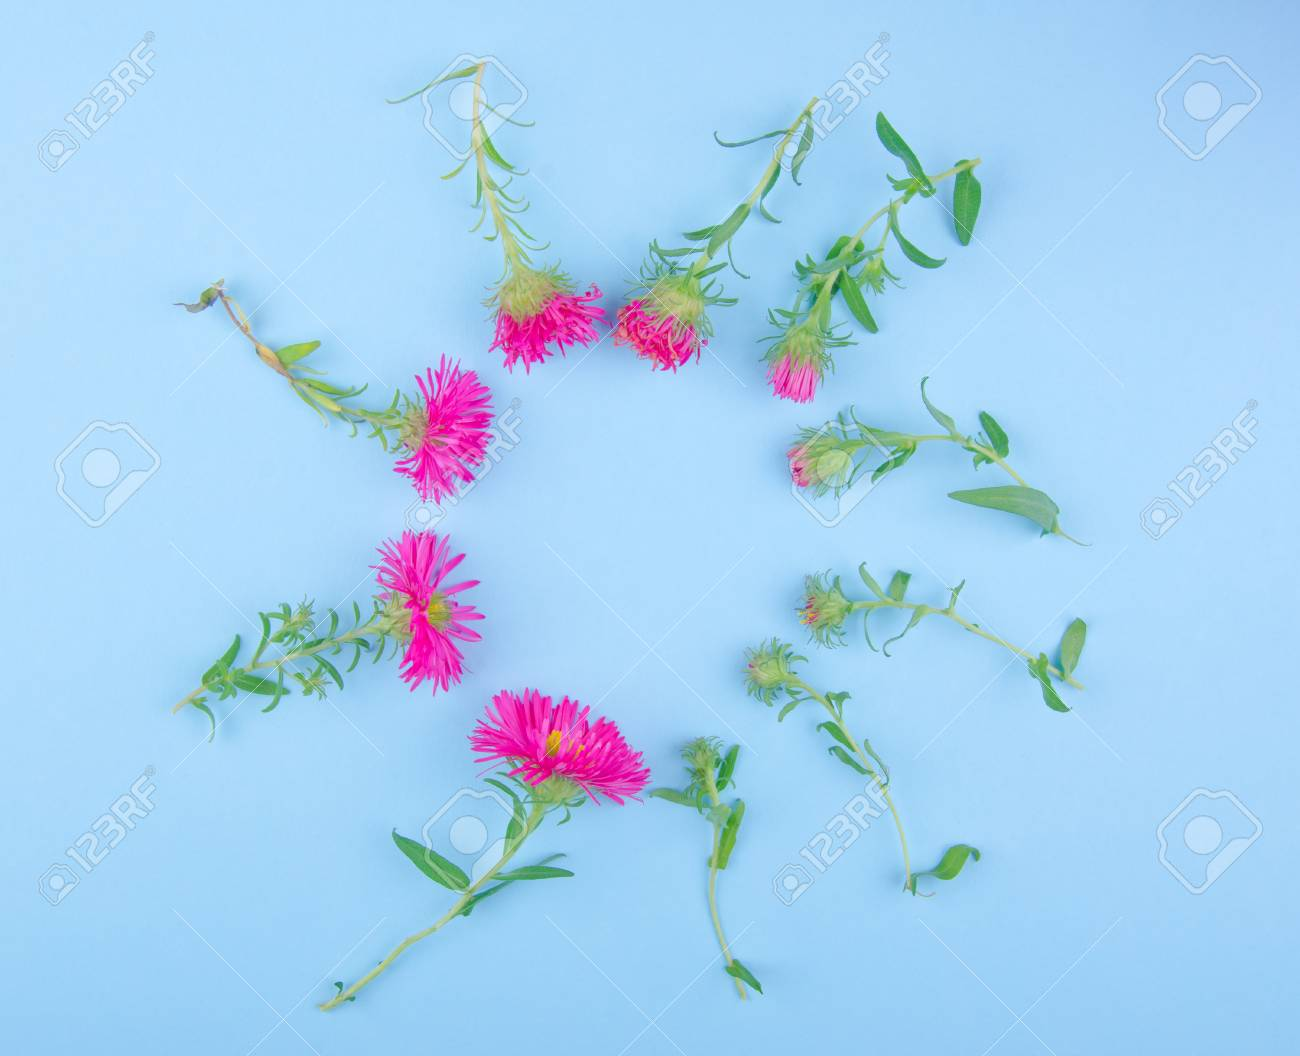 Pink Aster Flowers Scattered Against A Blue Background In The